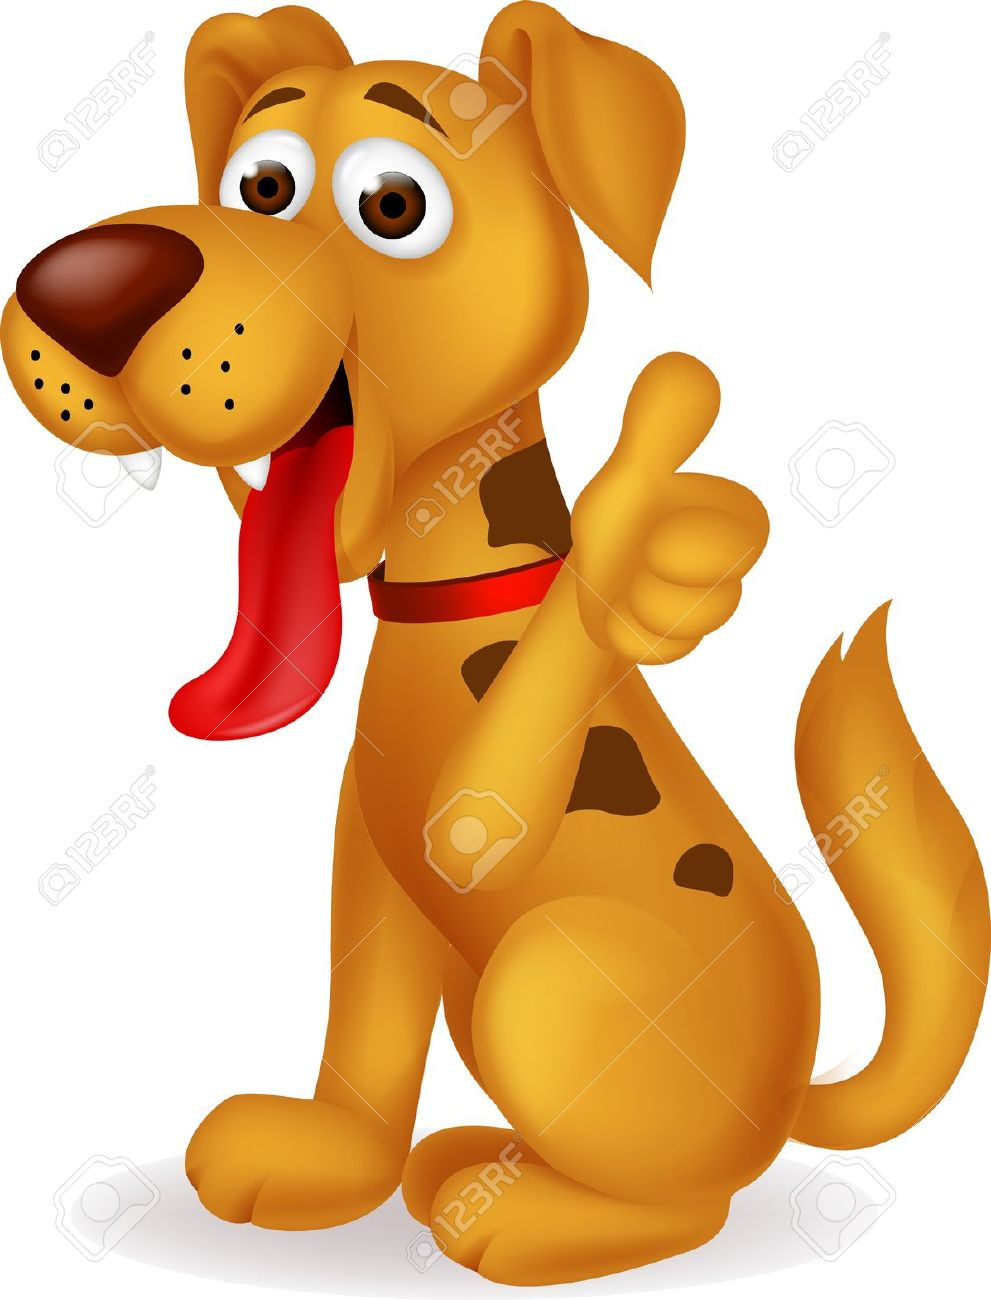 Clipartfest with thumb stock. Clipart dog thumbs up